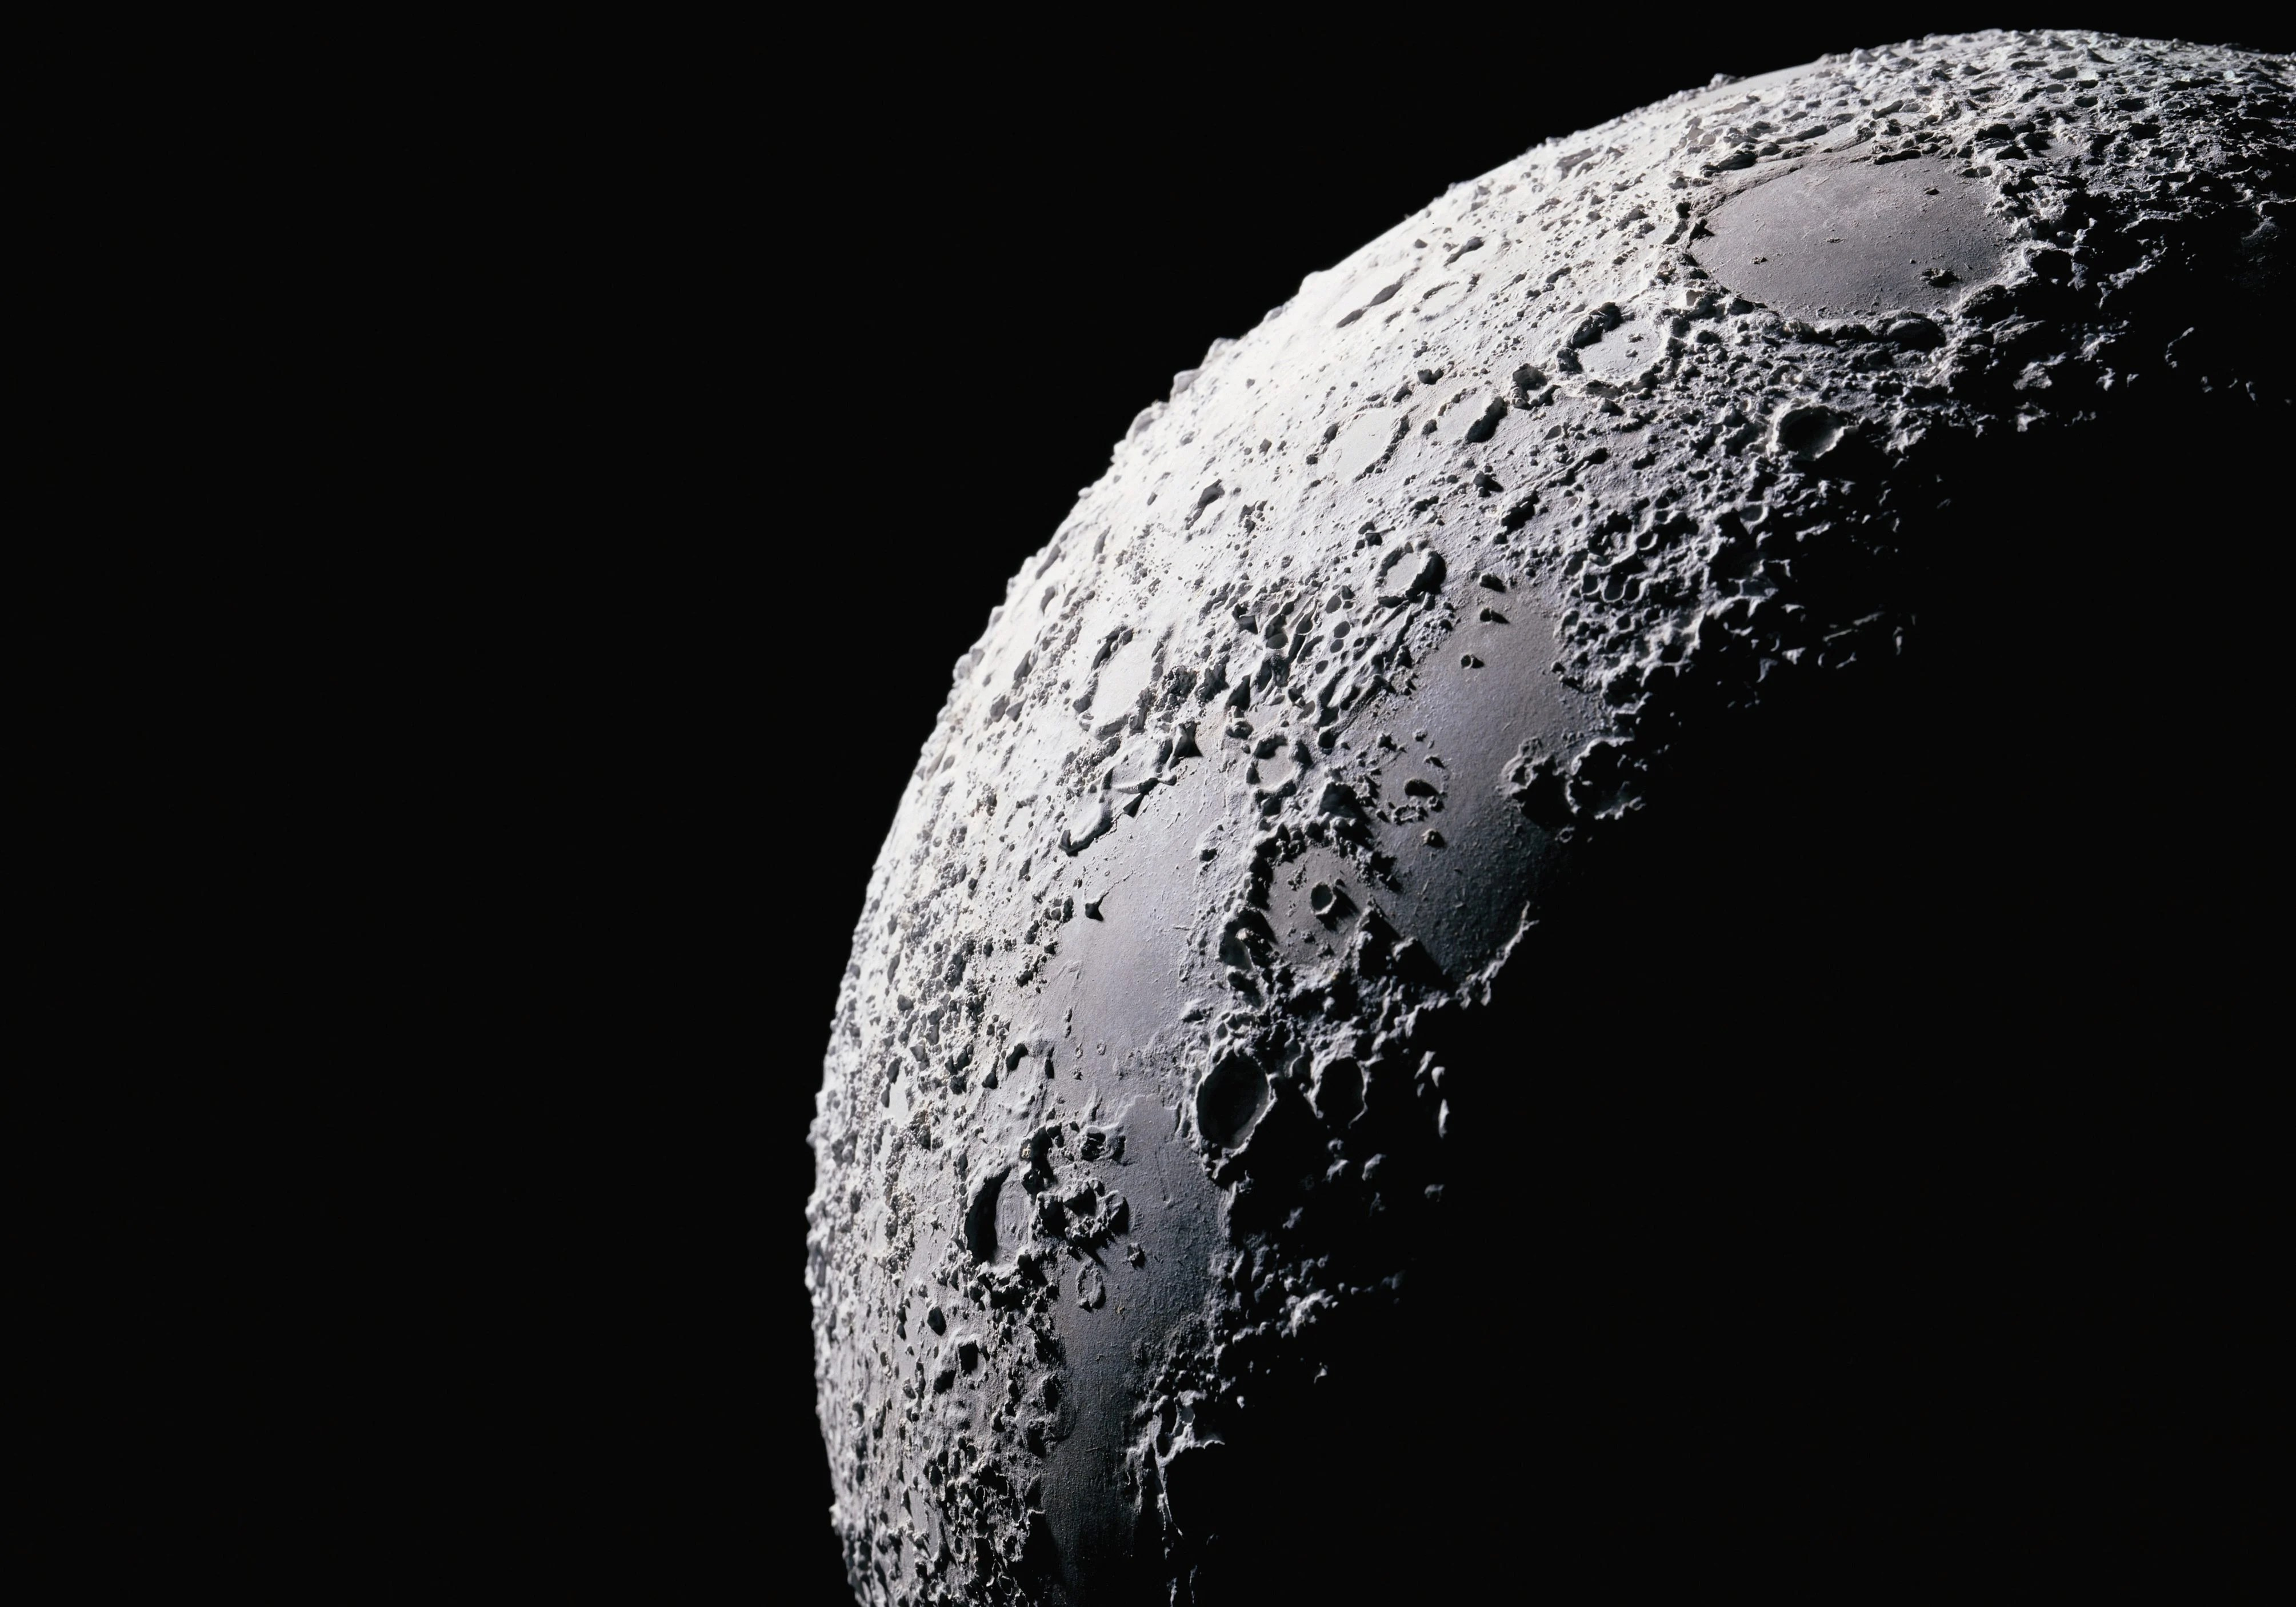 Moon Has Been Continuously Shrinking And Cooling For